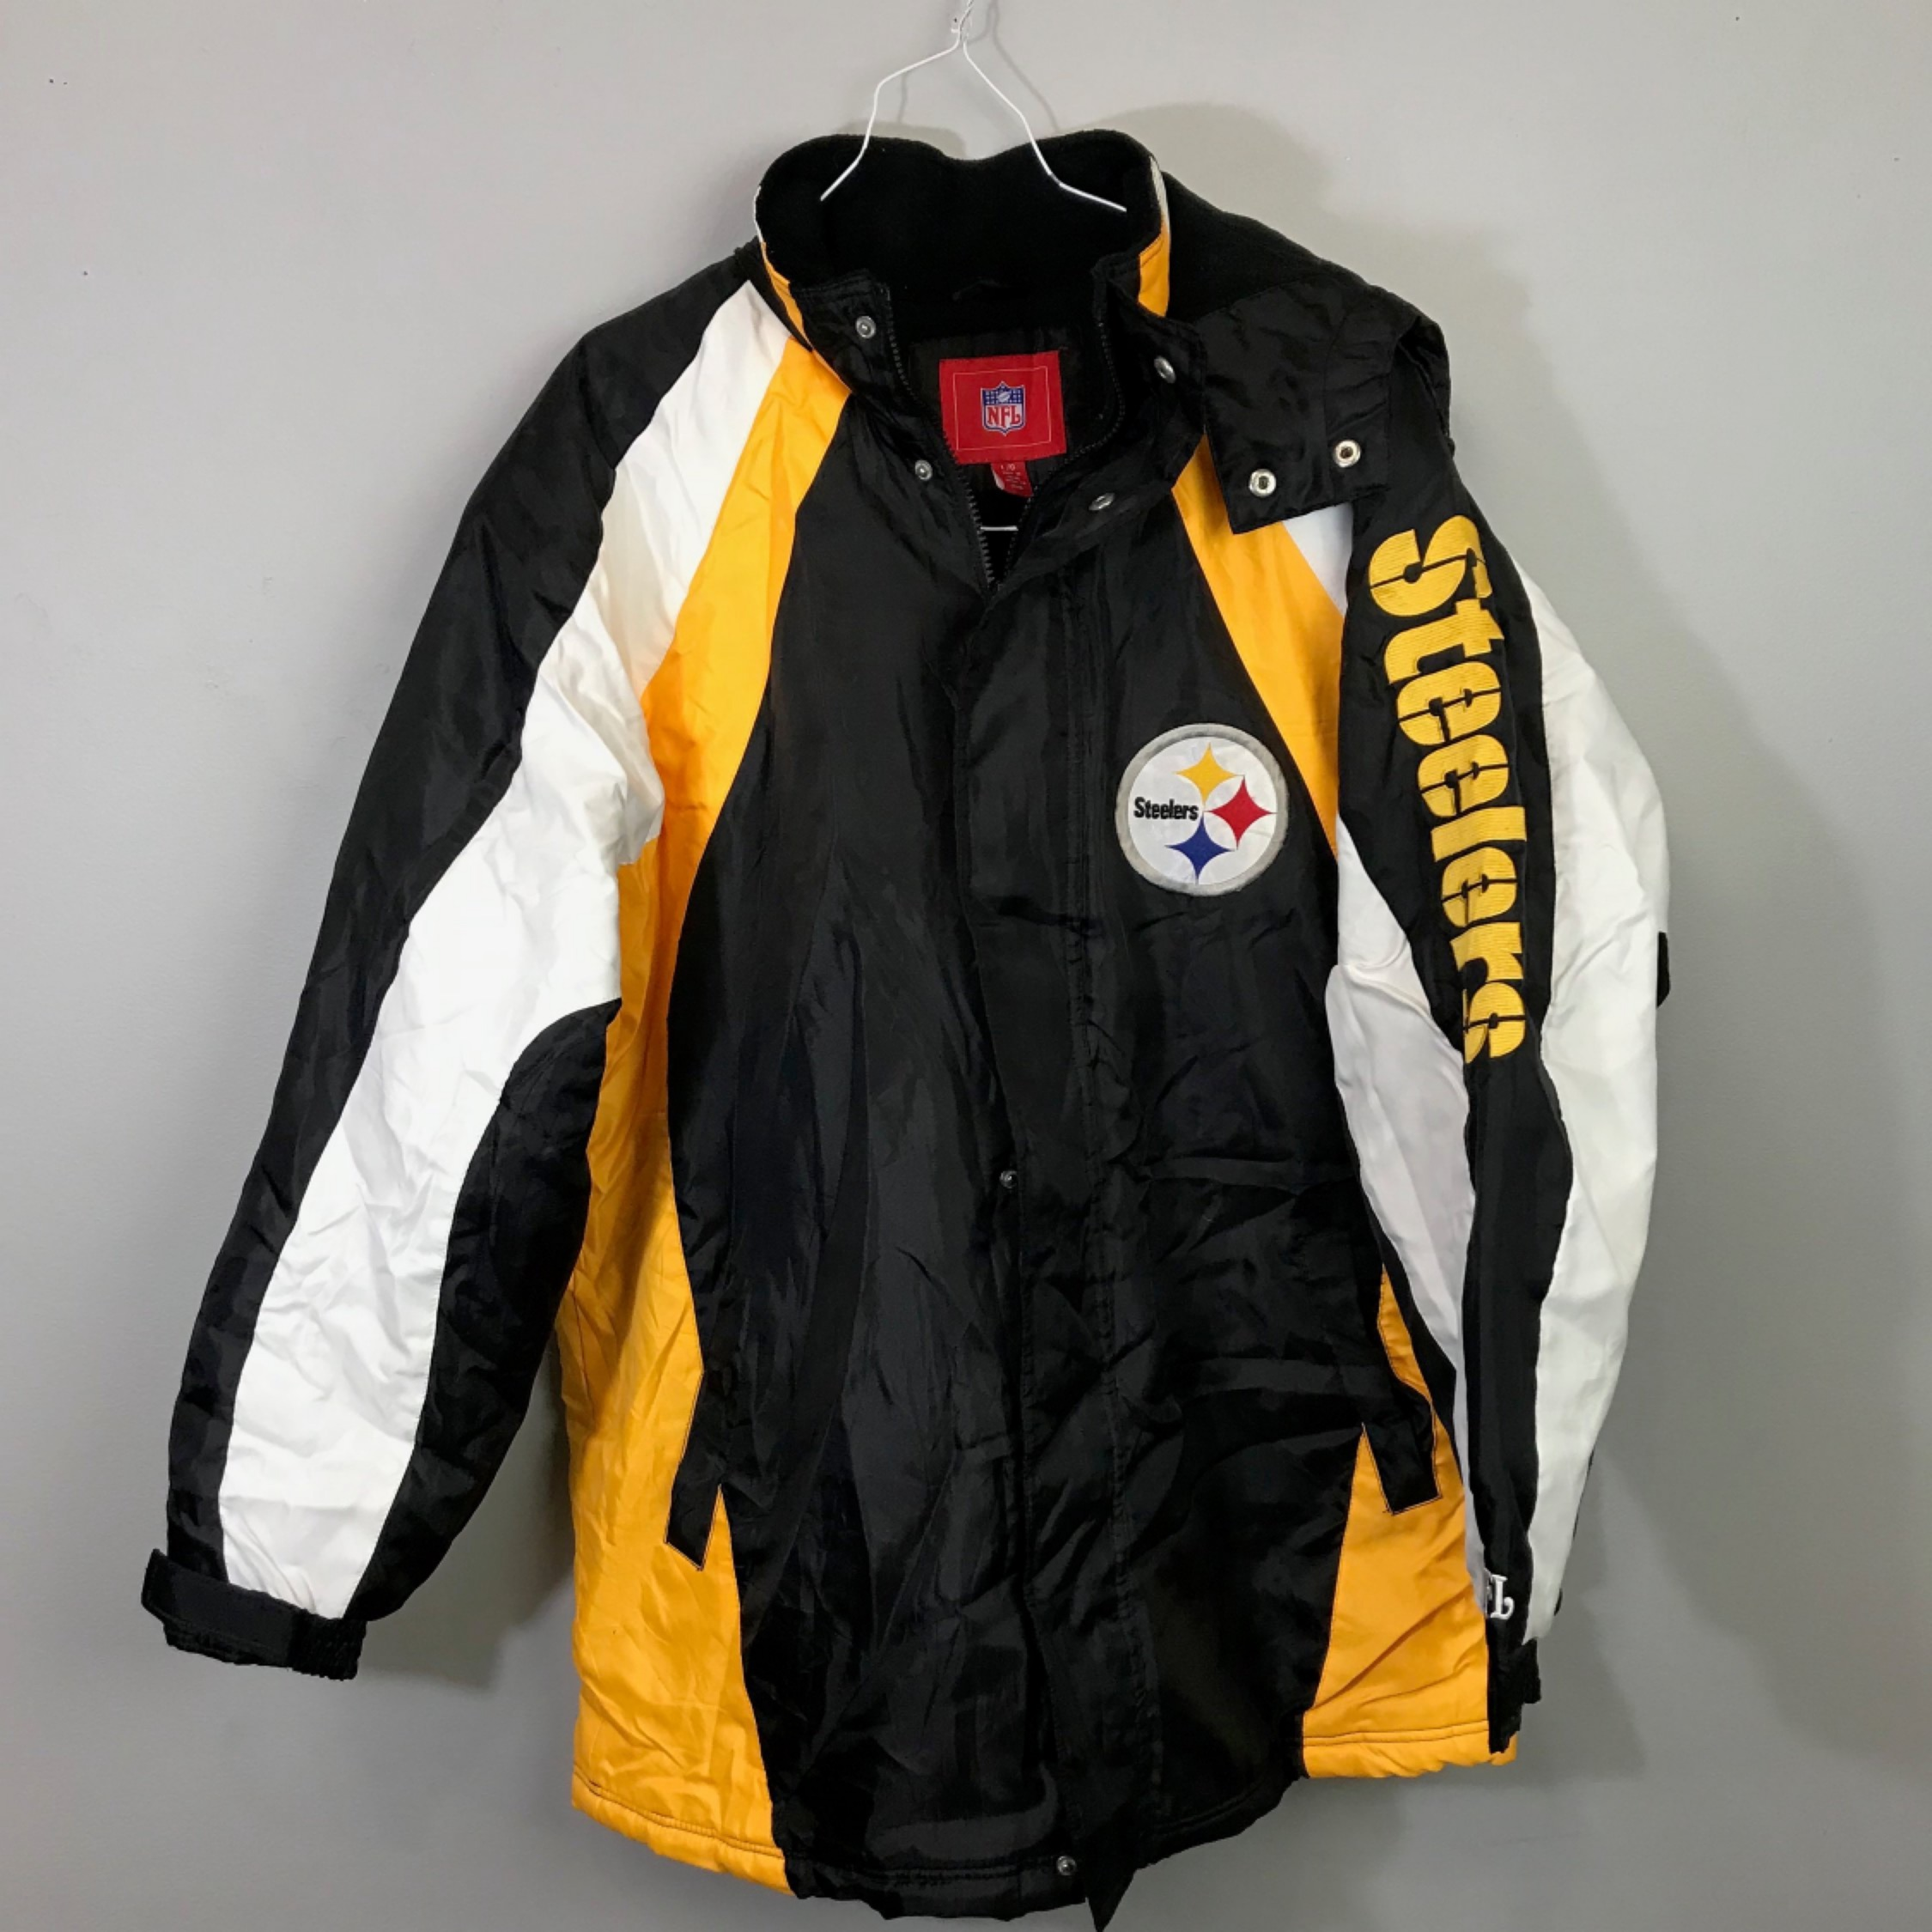 online store d708e 379a2 Vintage 90S Nfl Pittsburg Steelers Jacket